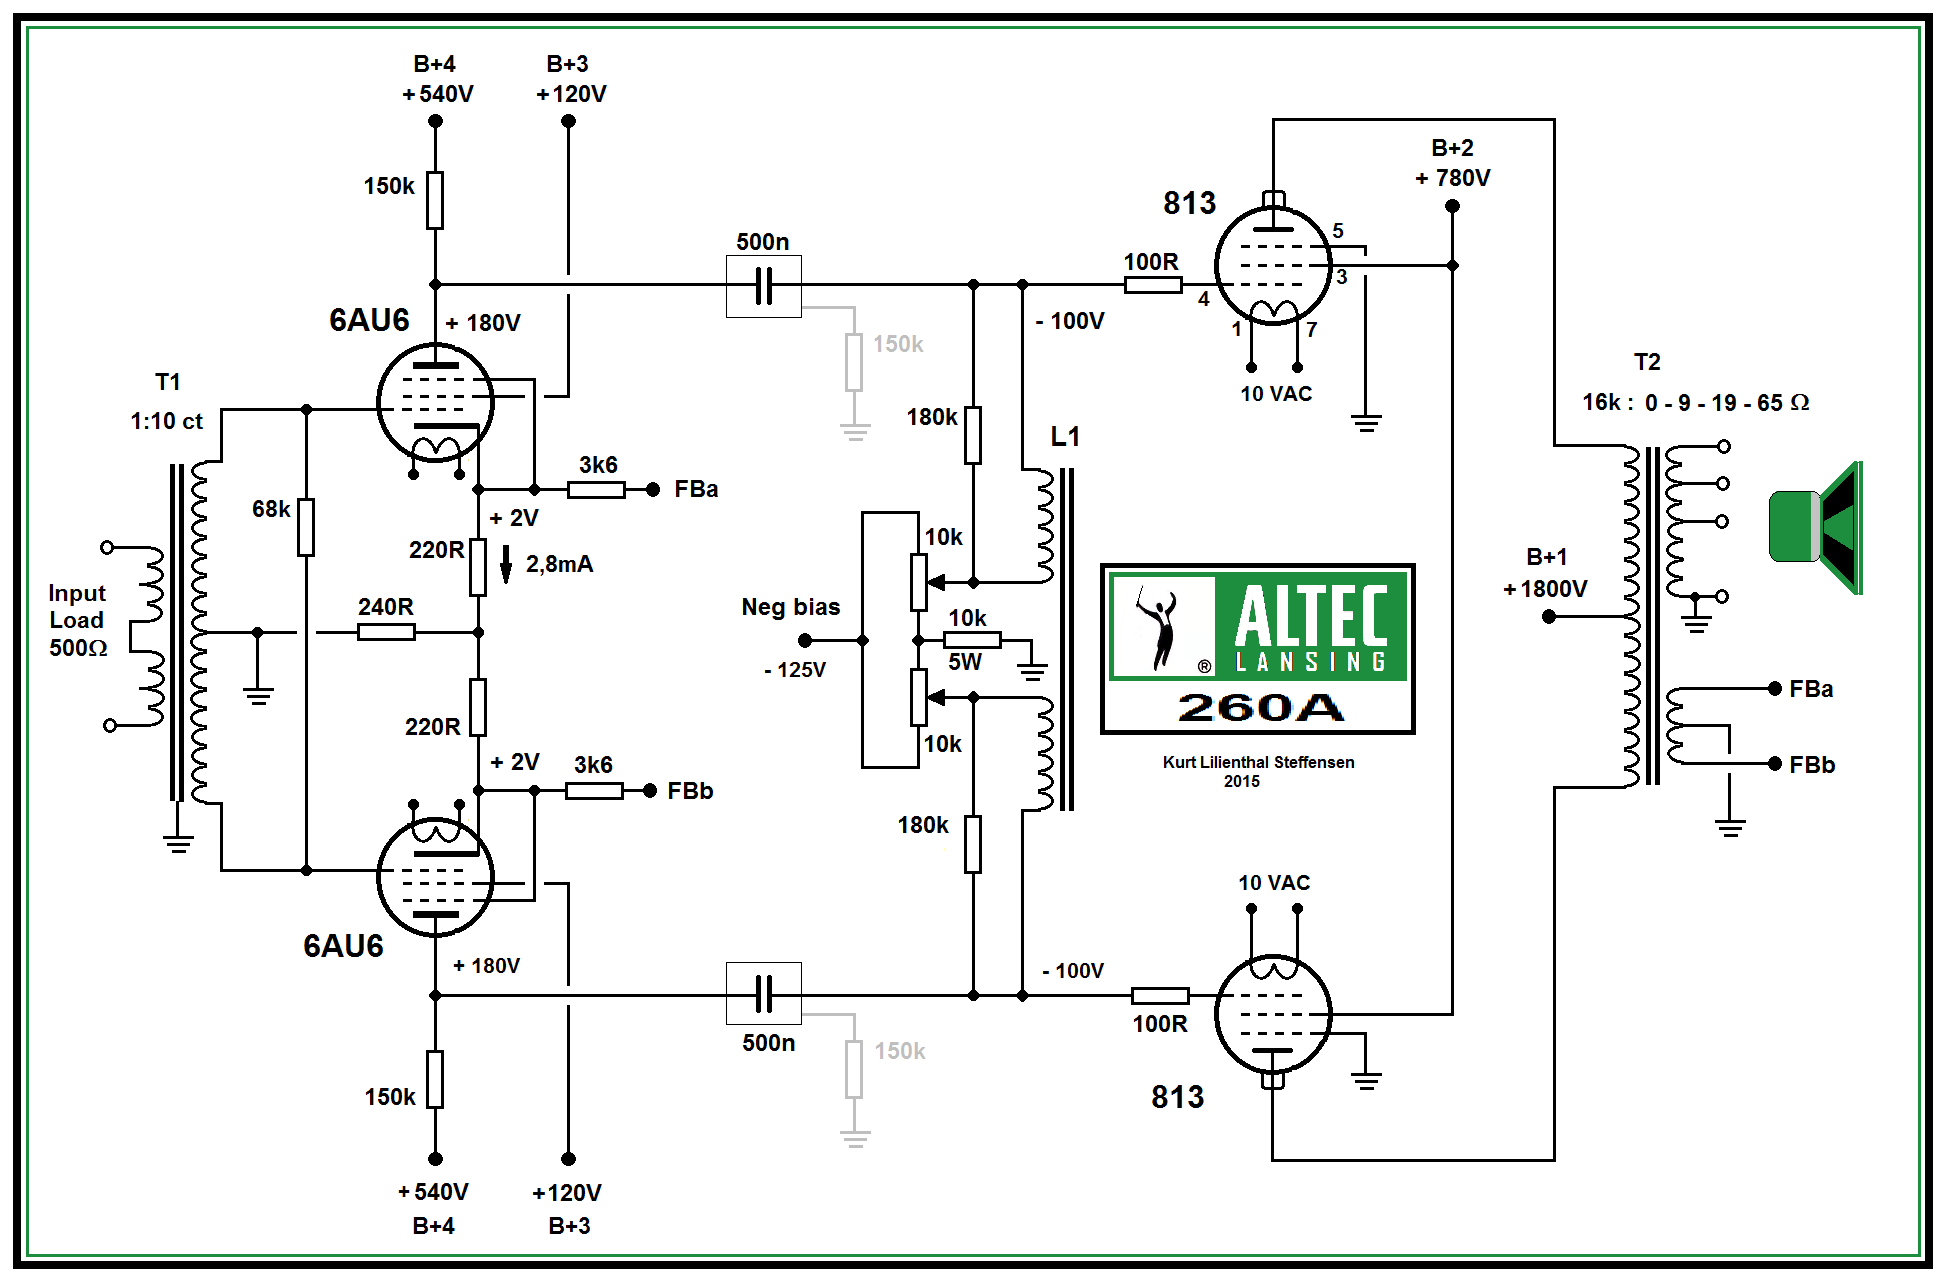 altec-lansing-260a-813-pp-power-amp-schematic-ed-vers-2